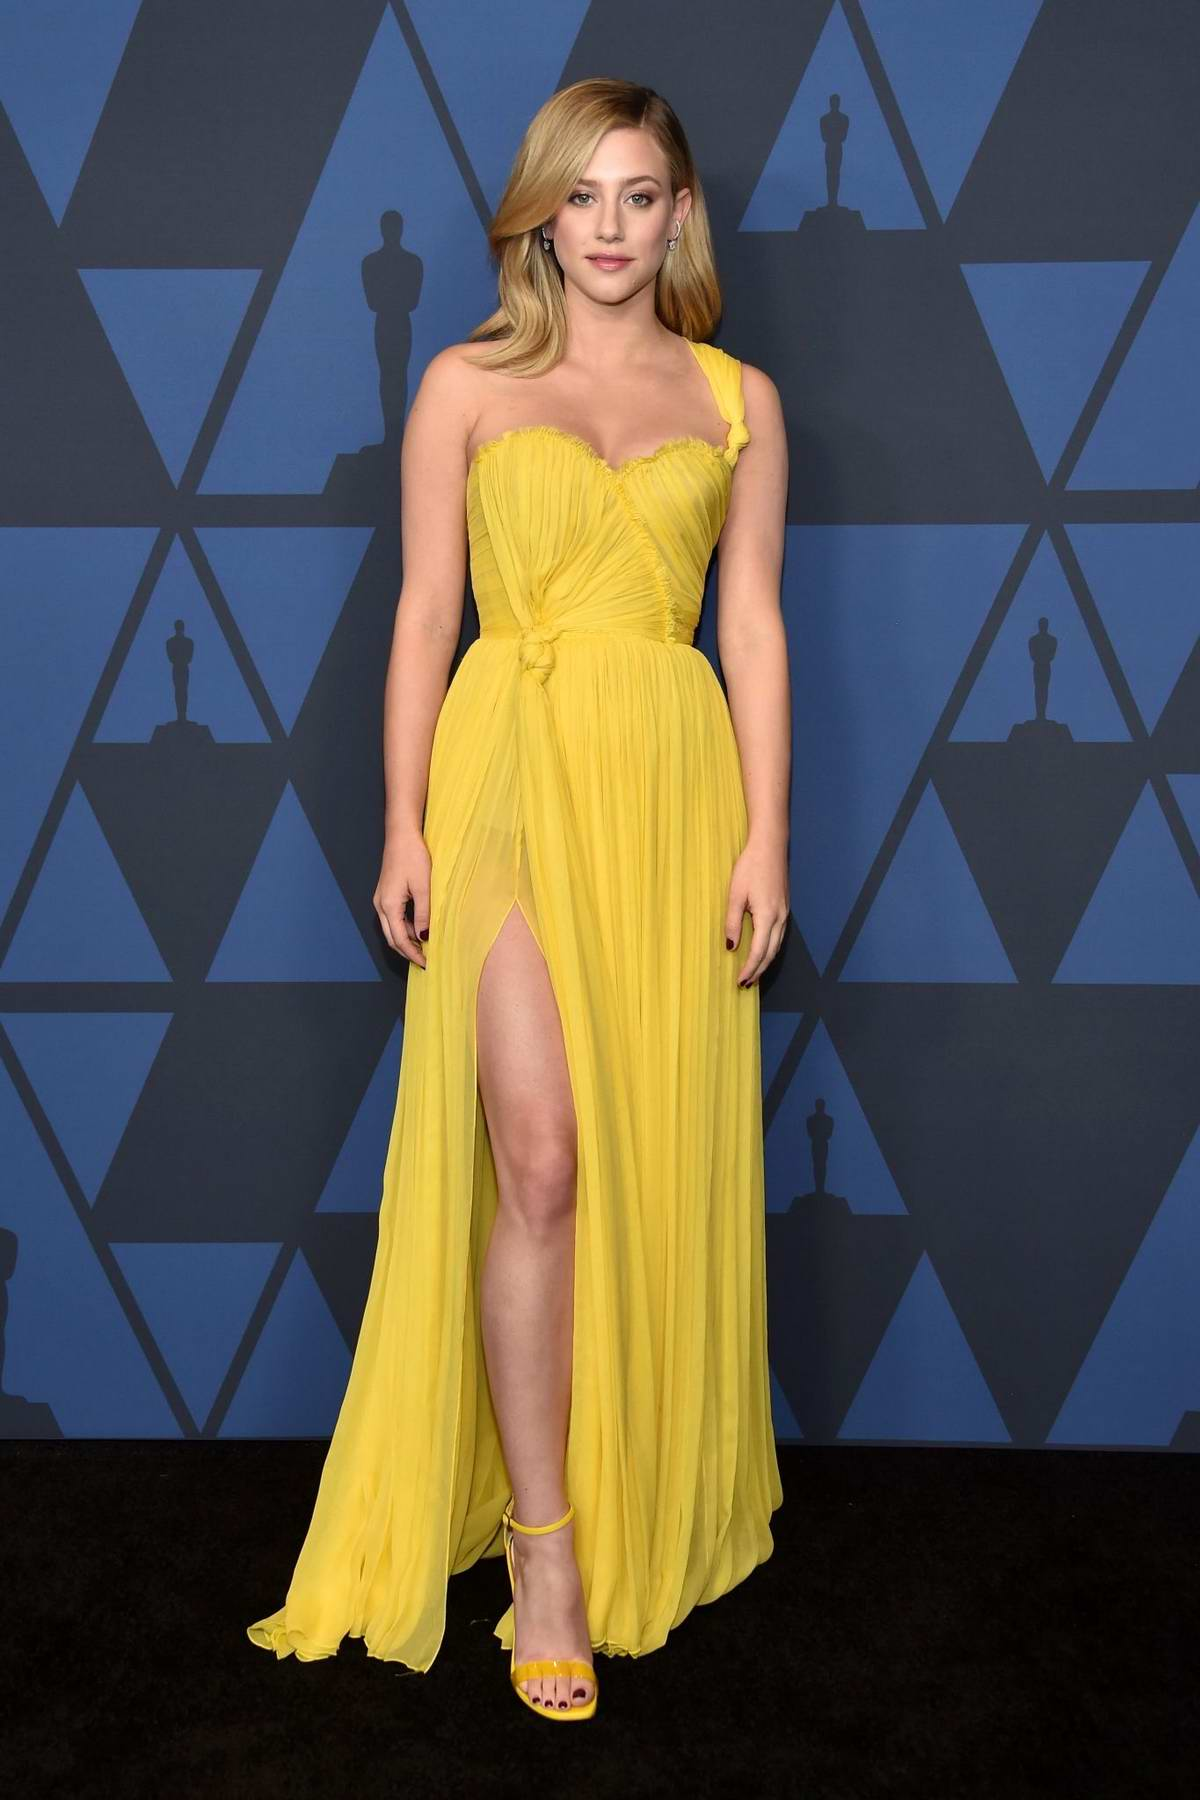 Lili Reinhart attends the Academy of Motion Picture Arts and Sciences' 11th Annual Governors Awards in Hollywood, California